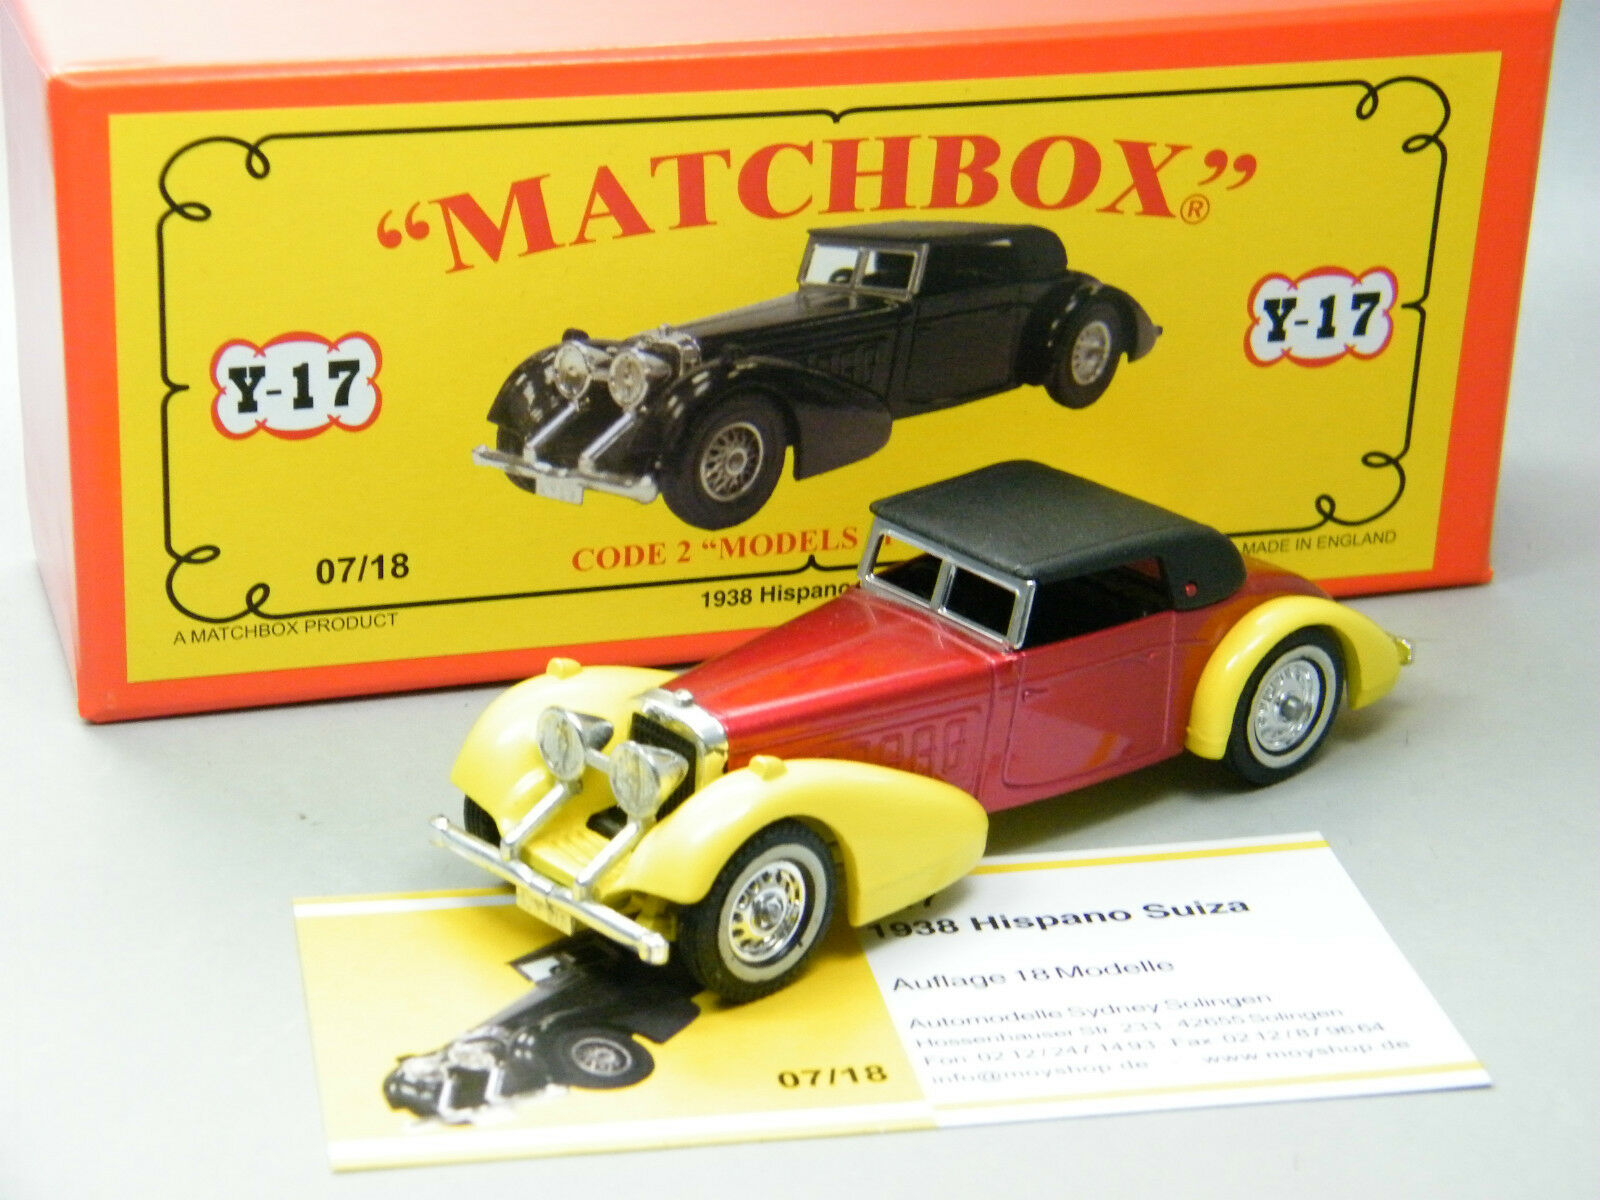 Matchbox MoY Code 2 Y-17 Hispano Suiza rot gelb Sondermodell in roter Box 1v6